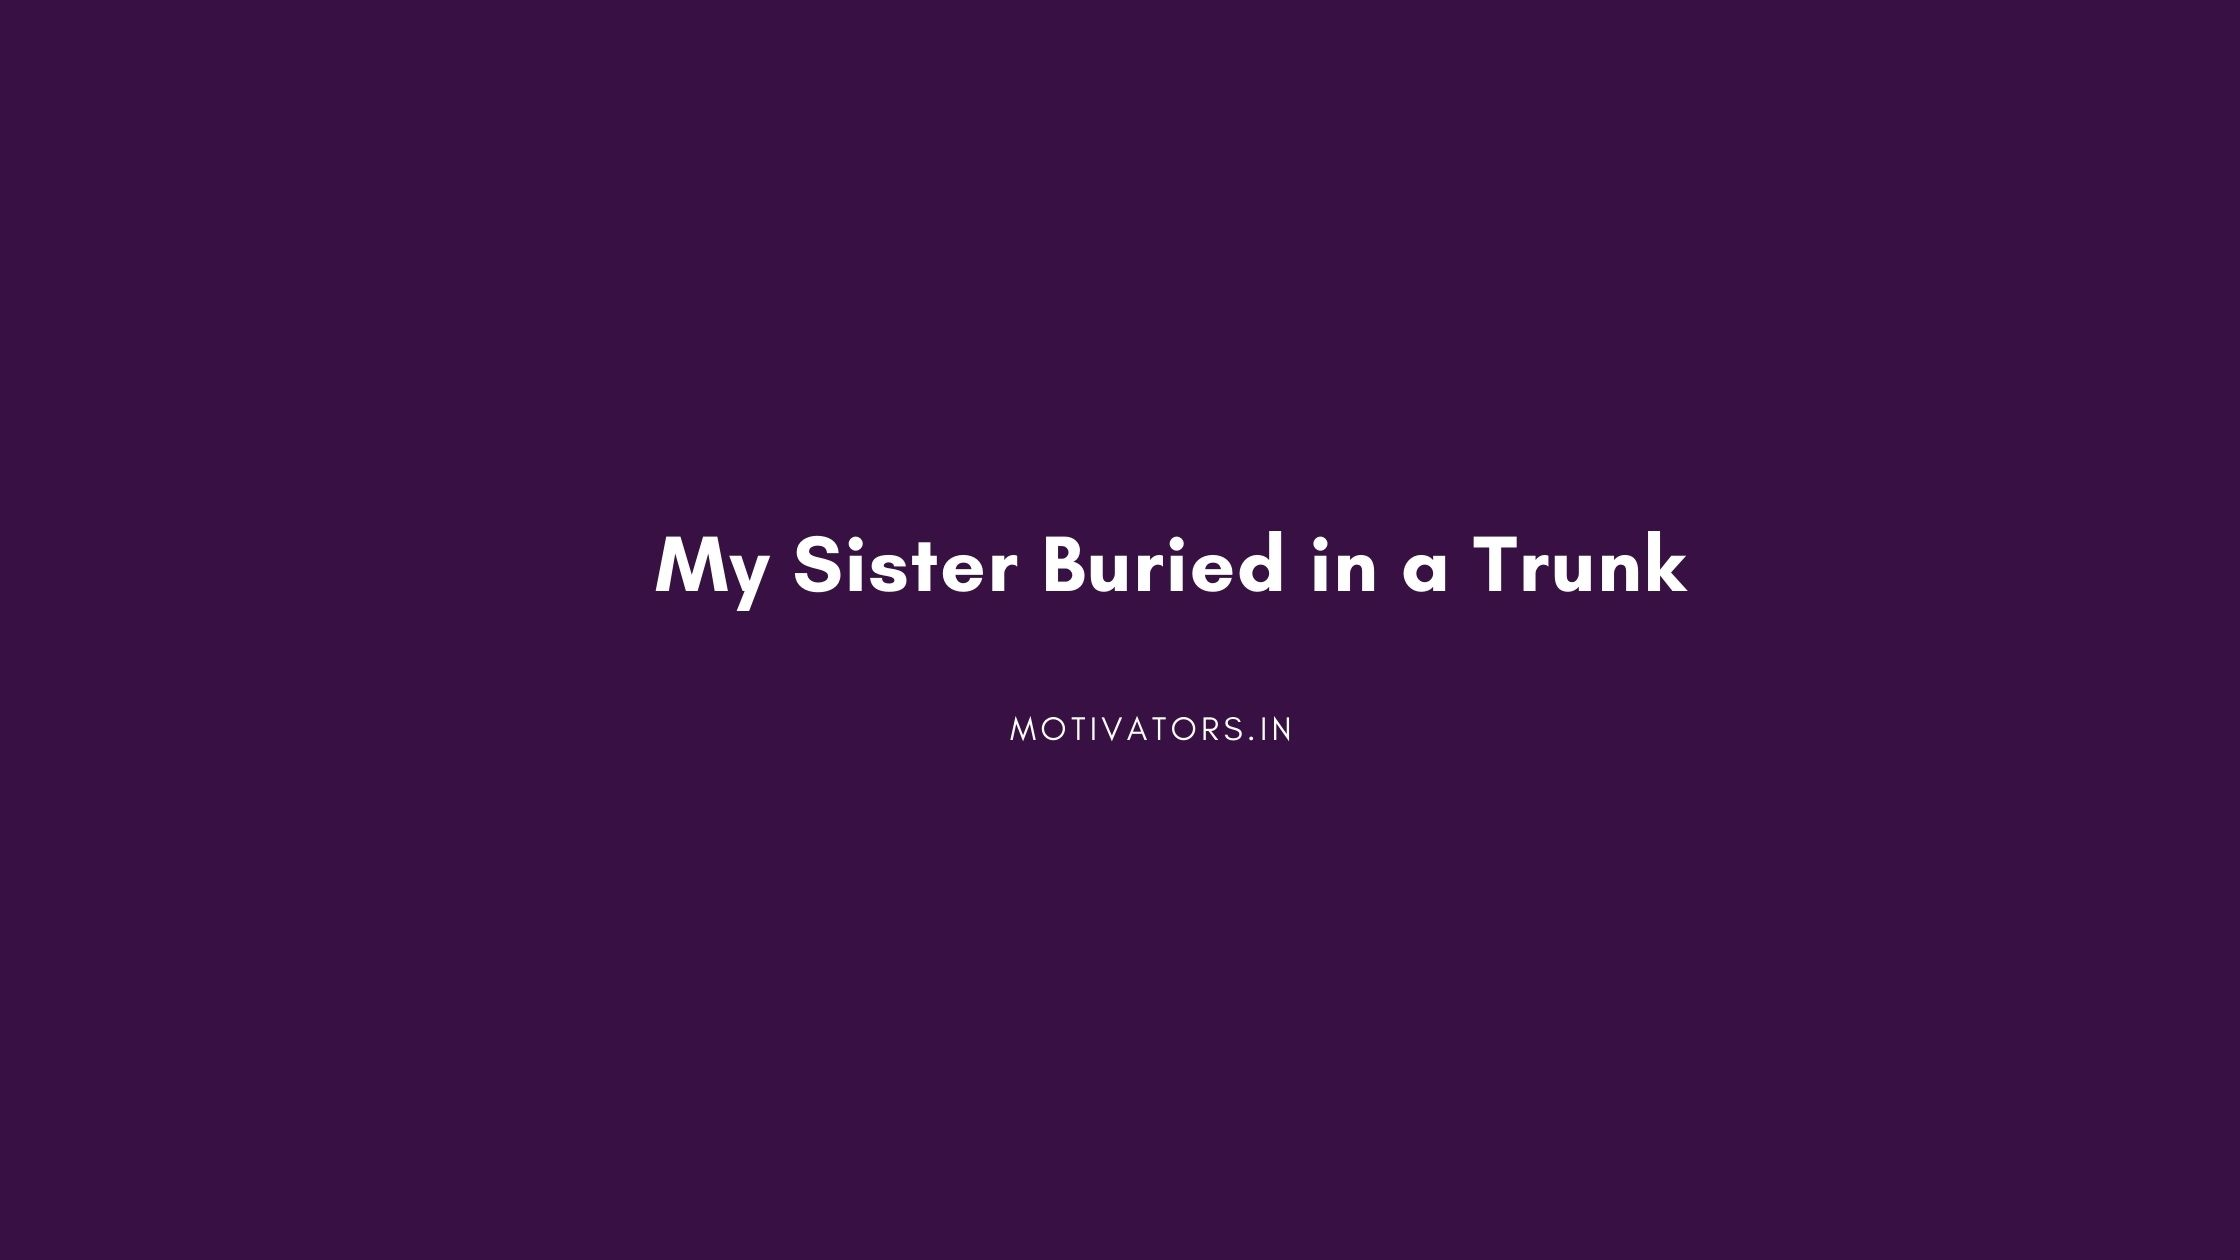 My Sister Buried in a Trunk